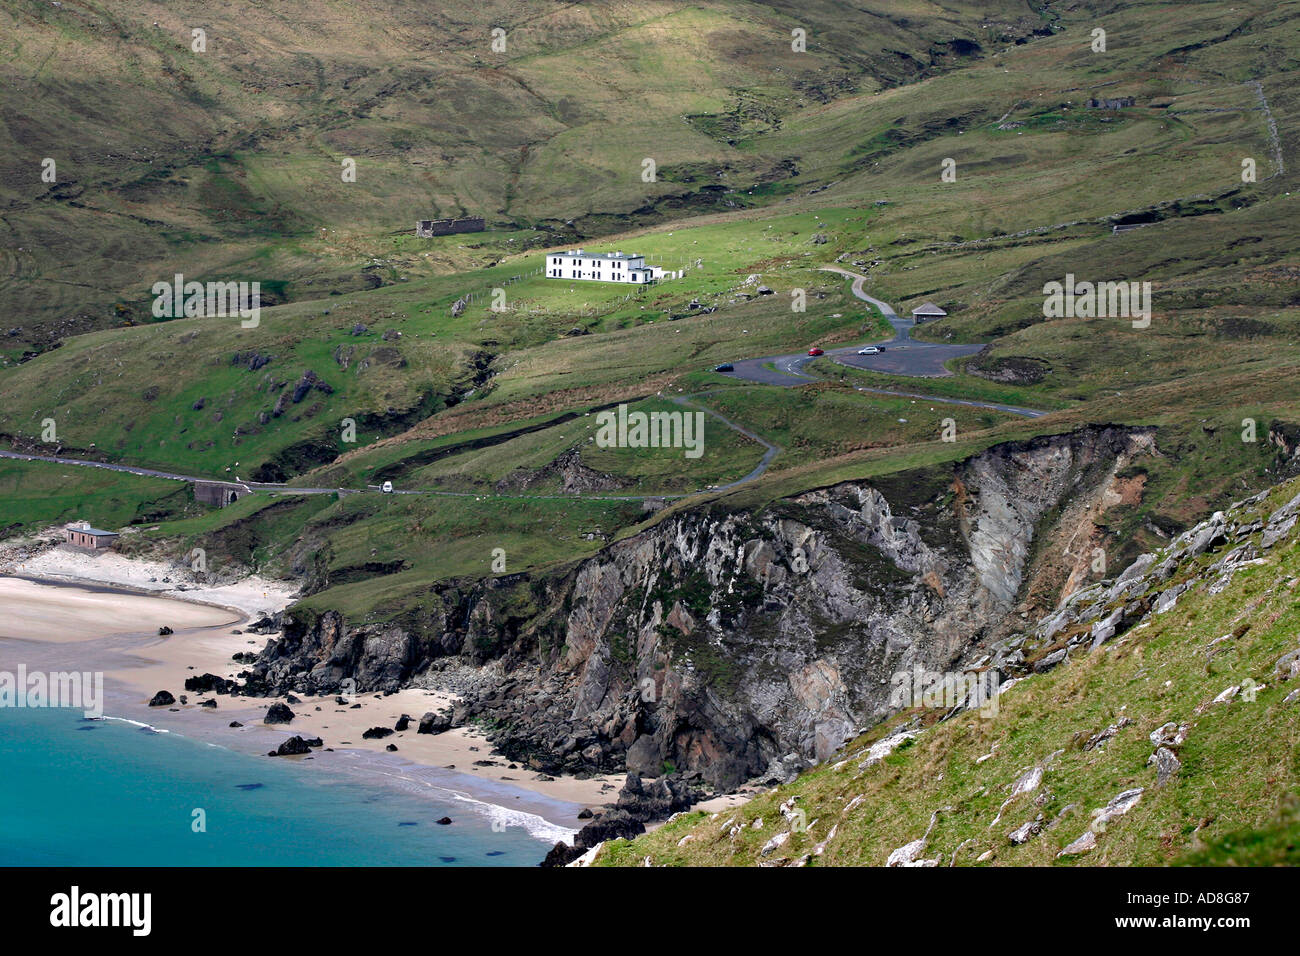 The house and beach at the end of the road on Achill. Turquoise water surrounds the beach and a sunbeam catches the white house - Stock Image